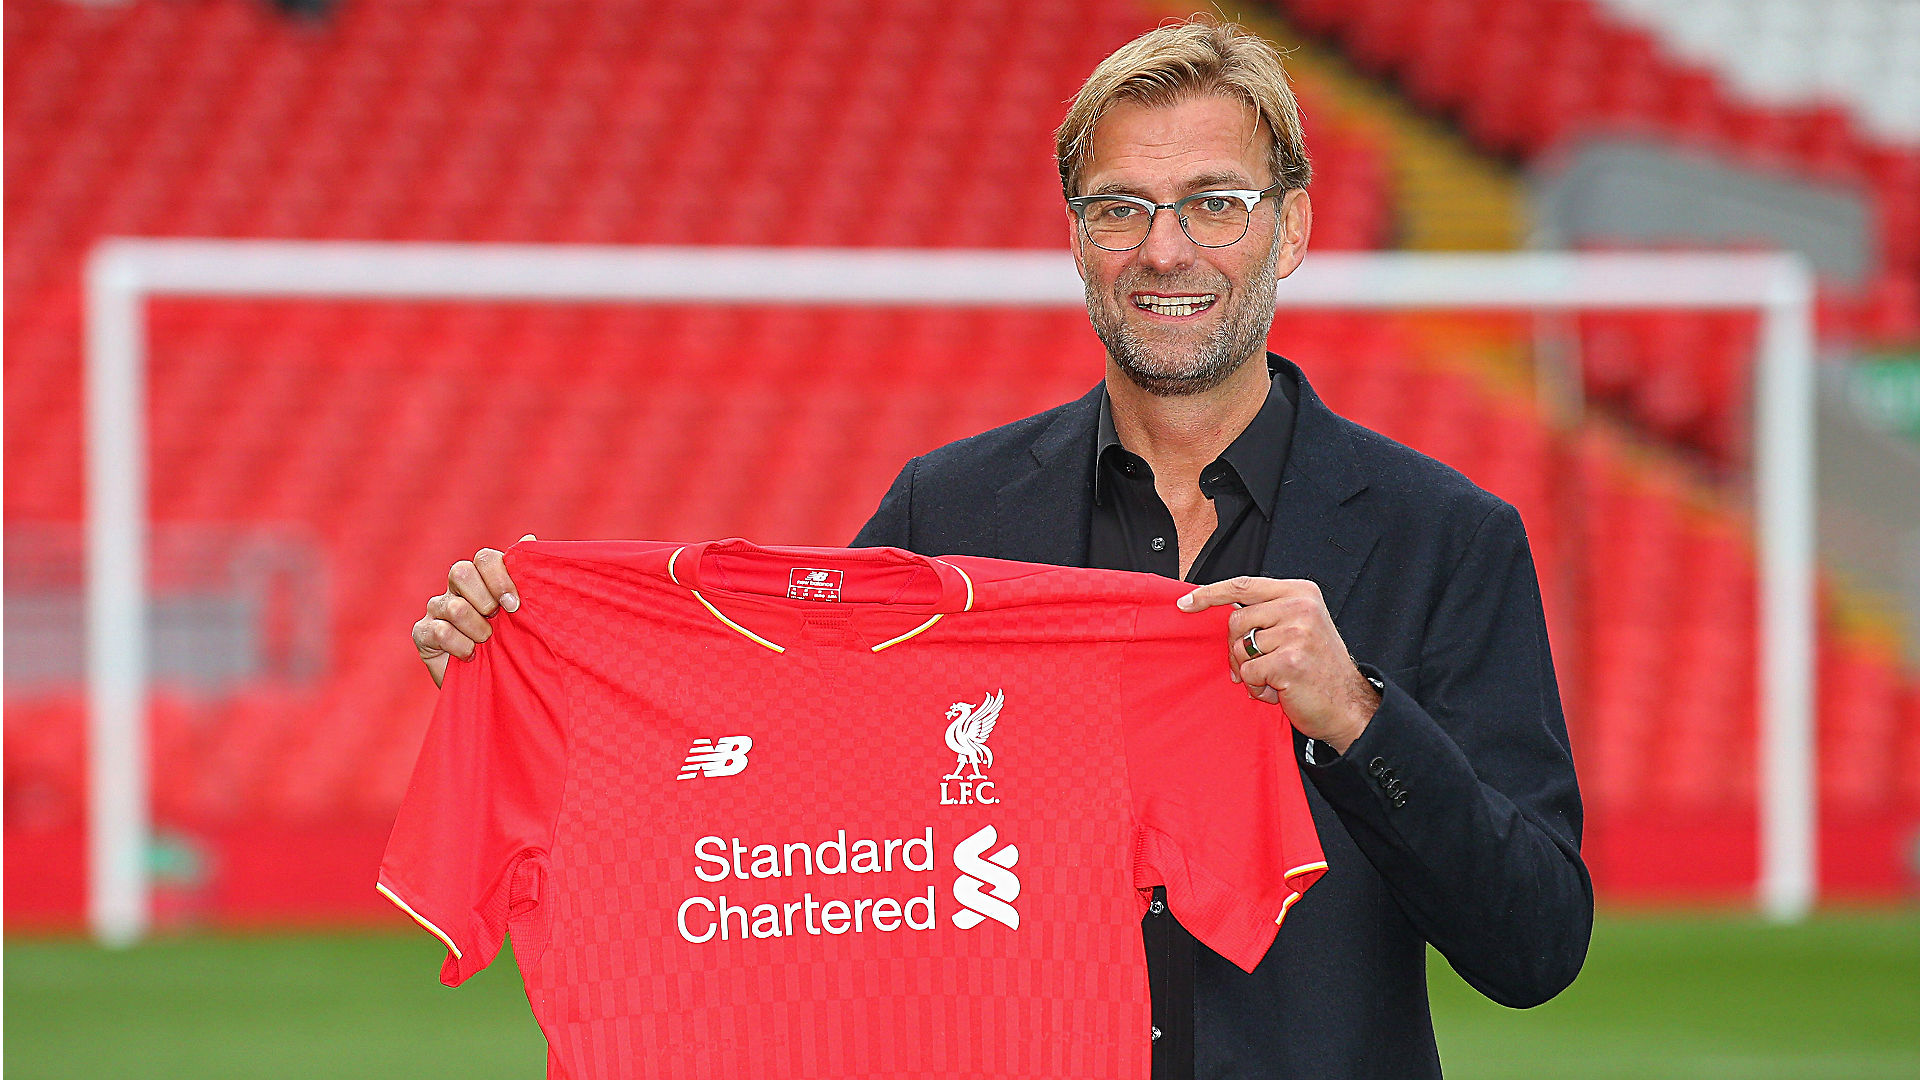 Liverpool vs. Tottenham odds and pick – Expect goals in Klopp's first with the Kop